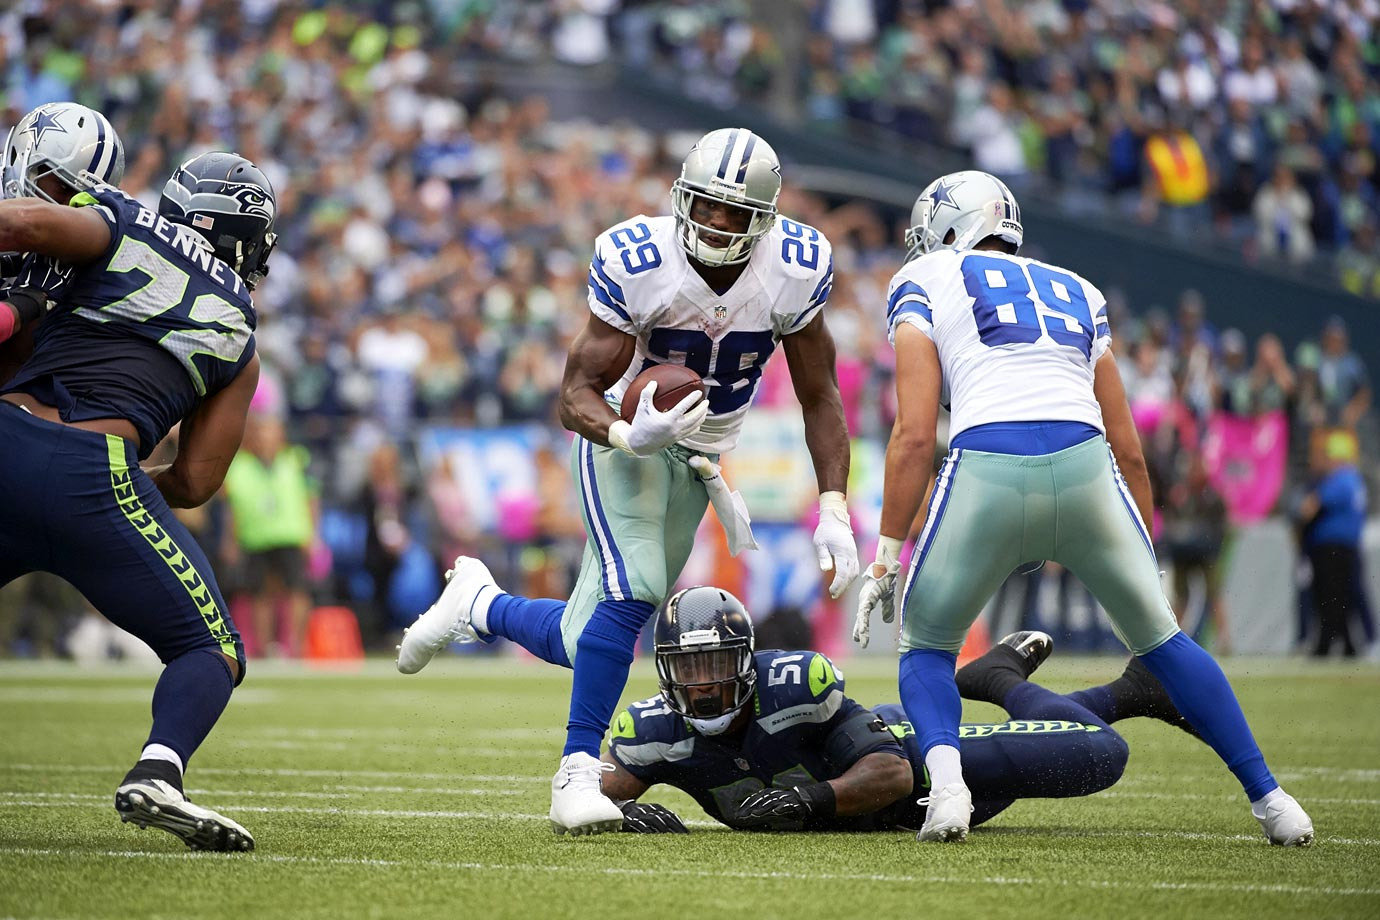 In their only home loss of the season, the Seahawks couldn't contain DeMarco Murray, who rushed for 155 yards on 28 carries. Russell Wilson was stifled by the Dallas defense, completing only 50 percent of his passes for 126 yards in the 30-23 loss.